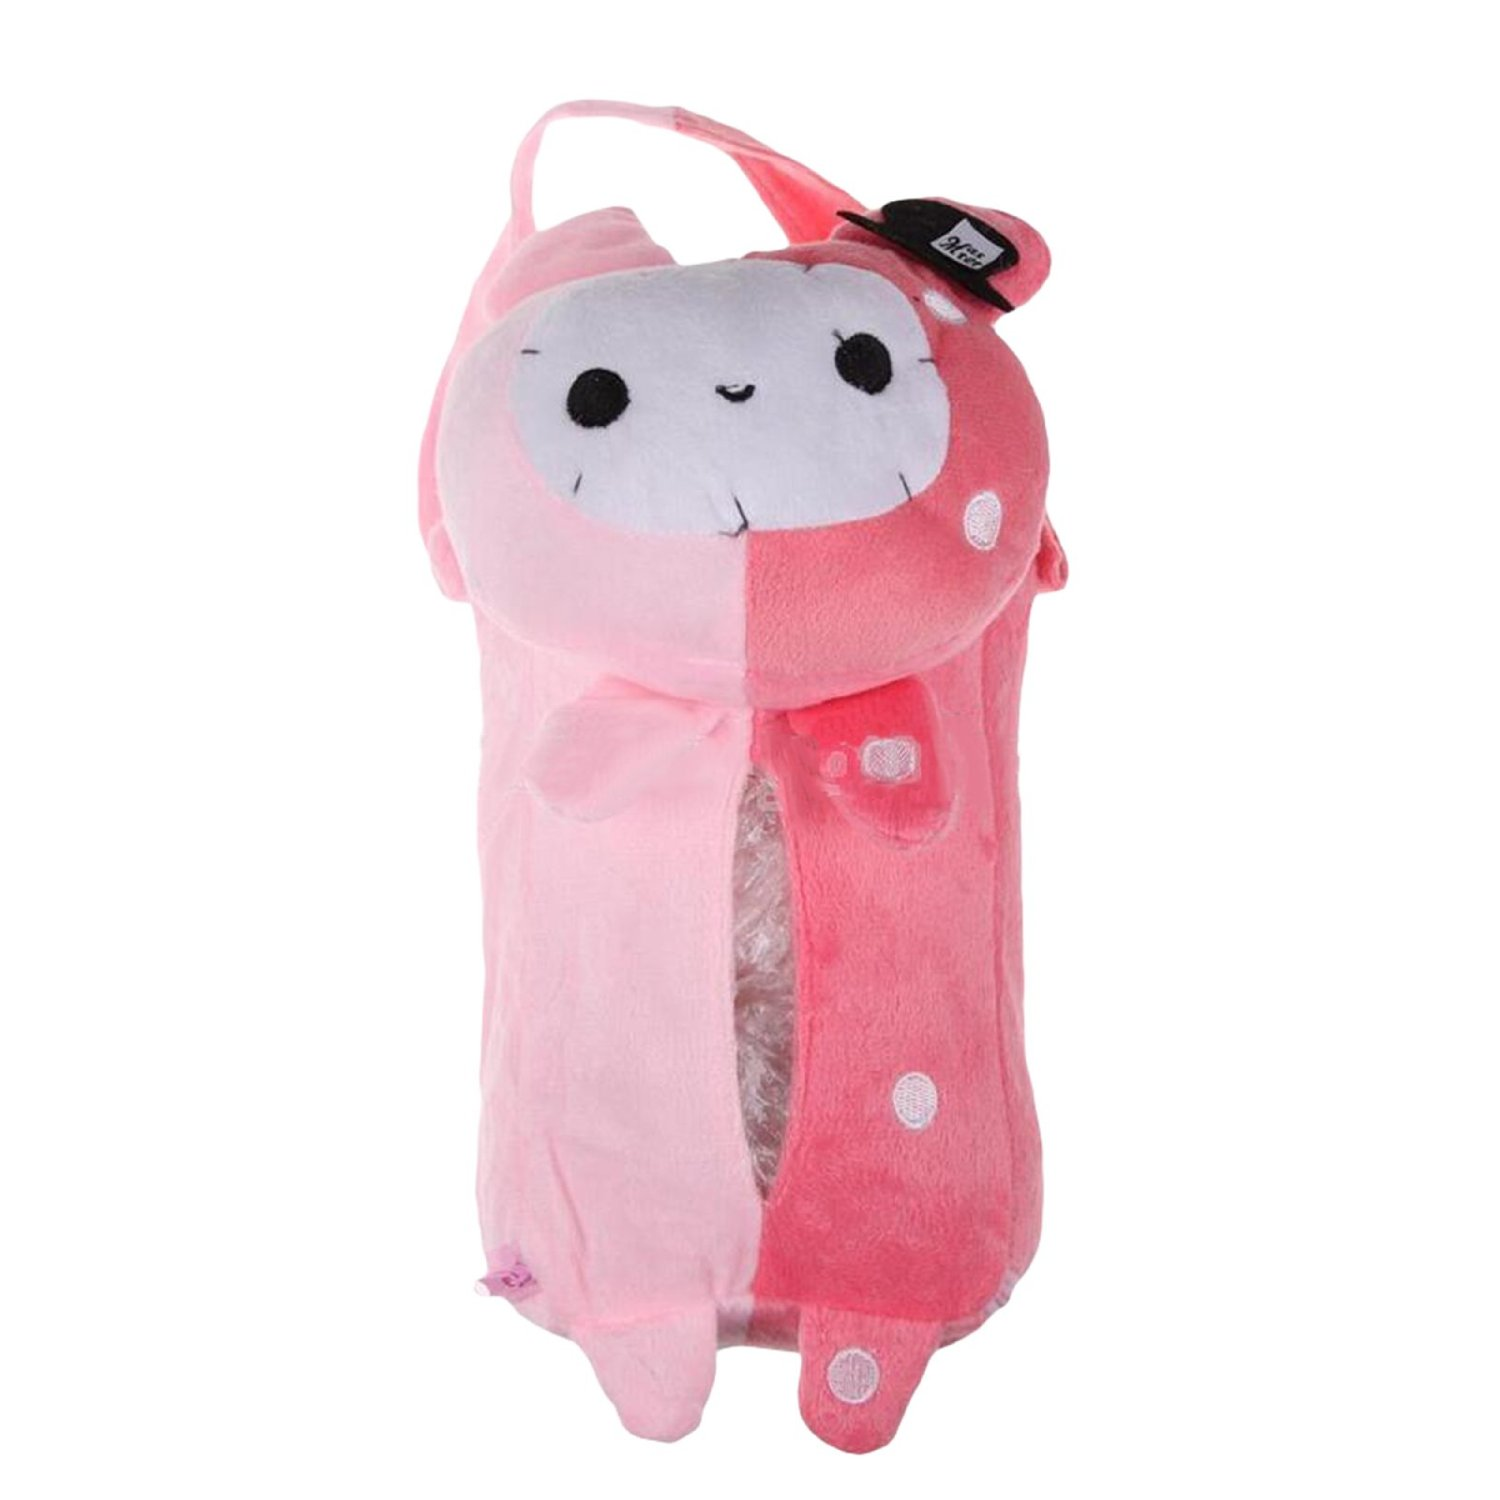 LADEY Cute Soft Portable Hanging Car Tissue Box Cover Car Accessories Home Office Car Rectangle Animal Tissue Box Cover Holder Paper Box Bathroom Storage Hot(Rabbit)